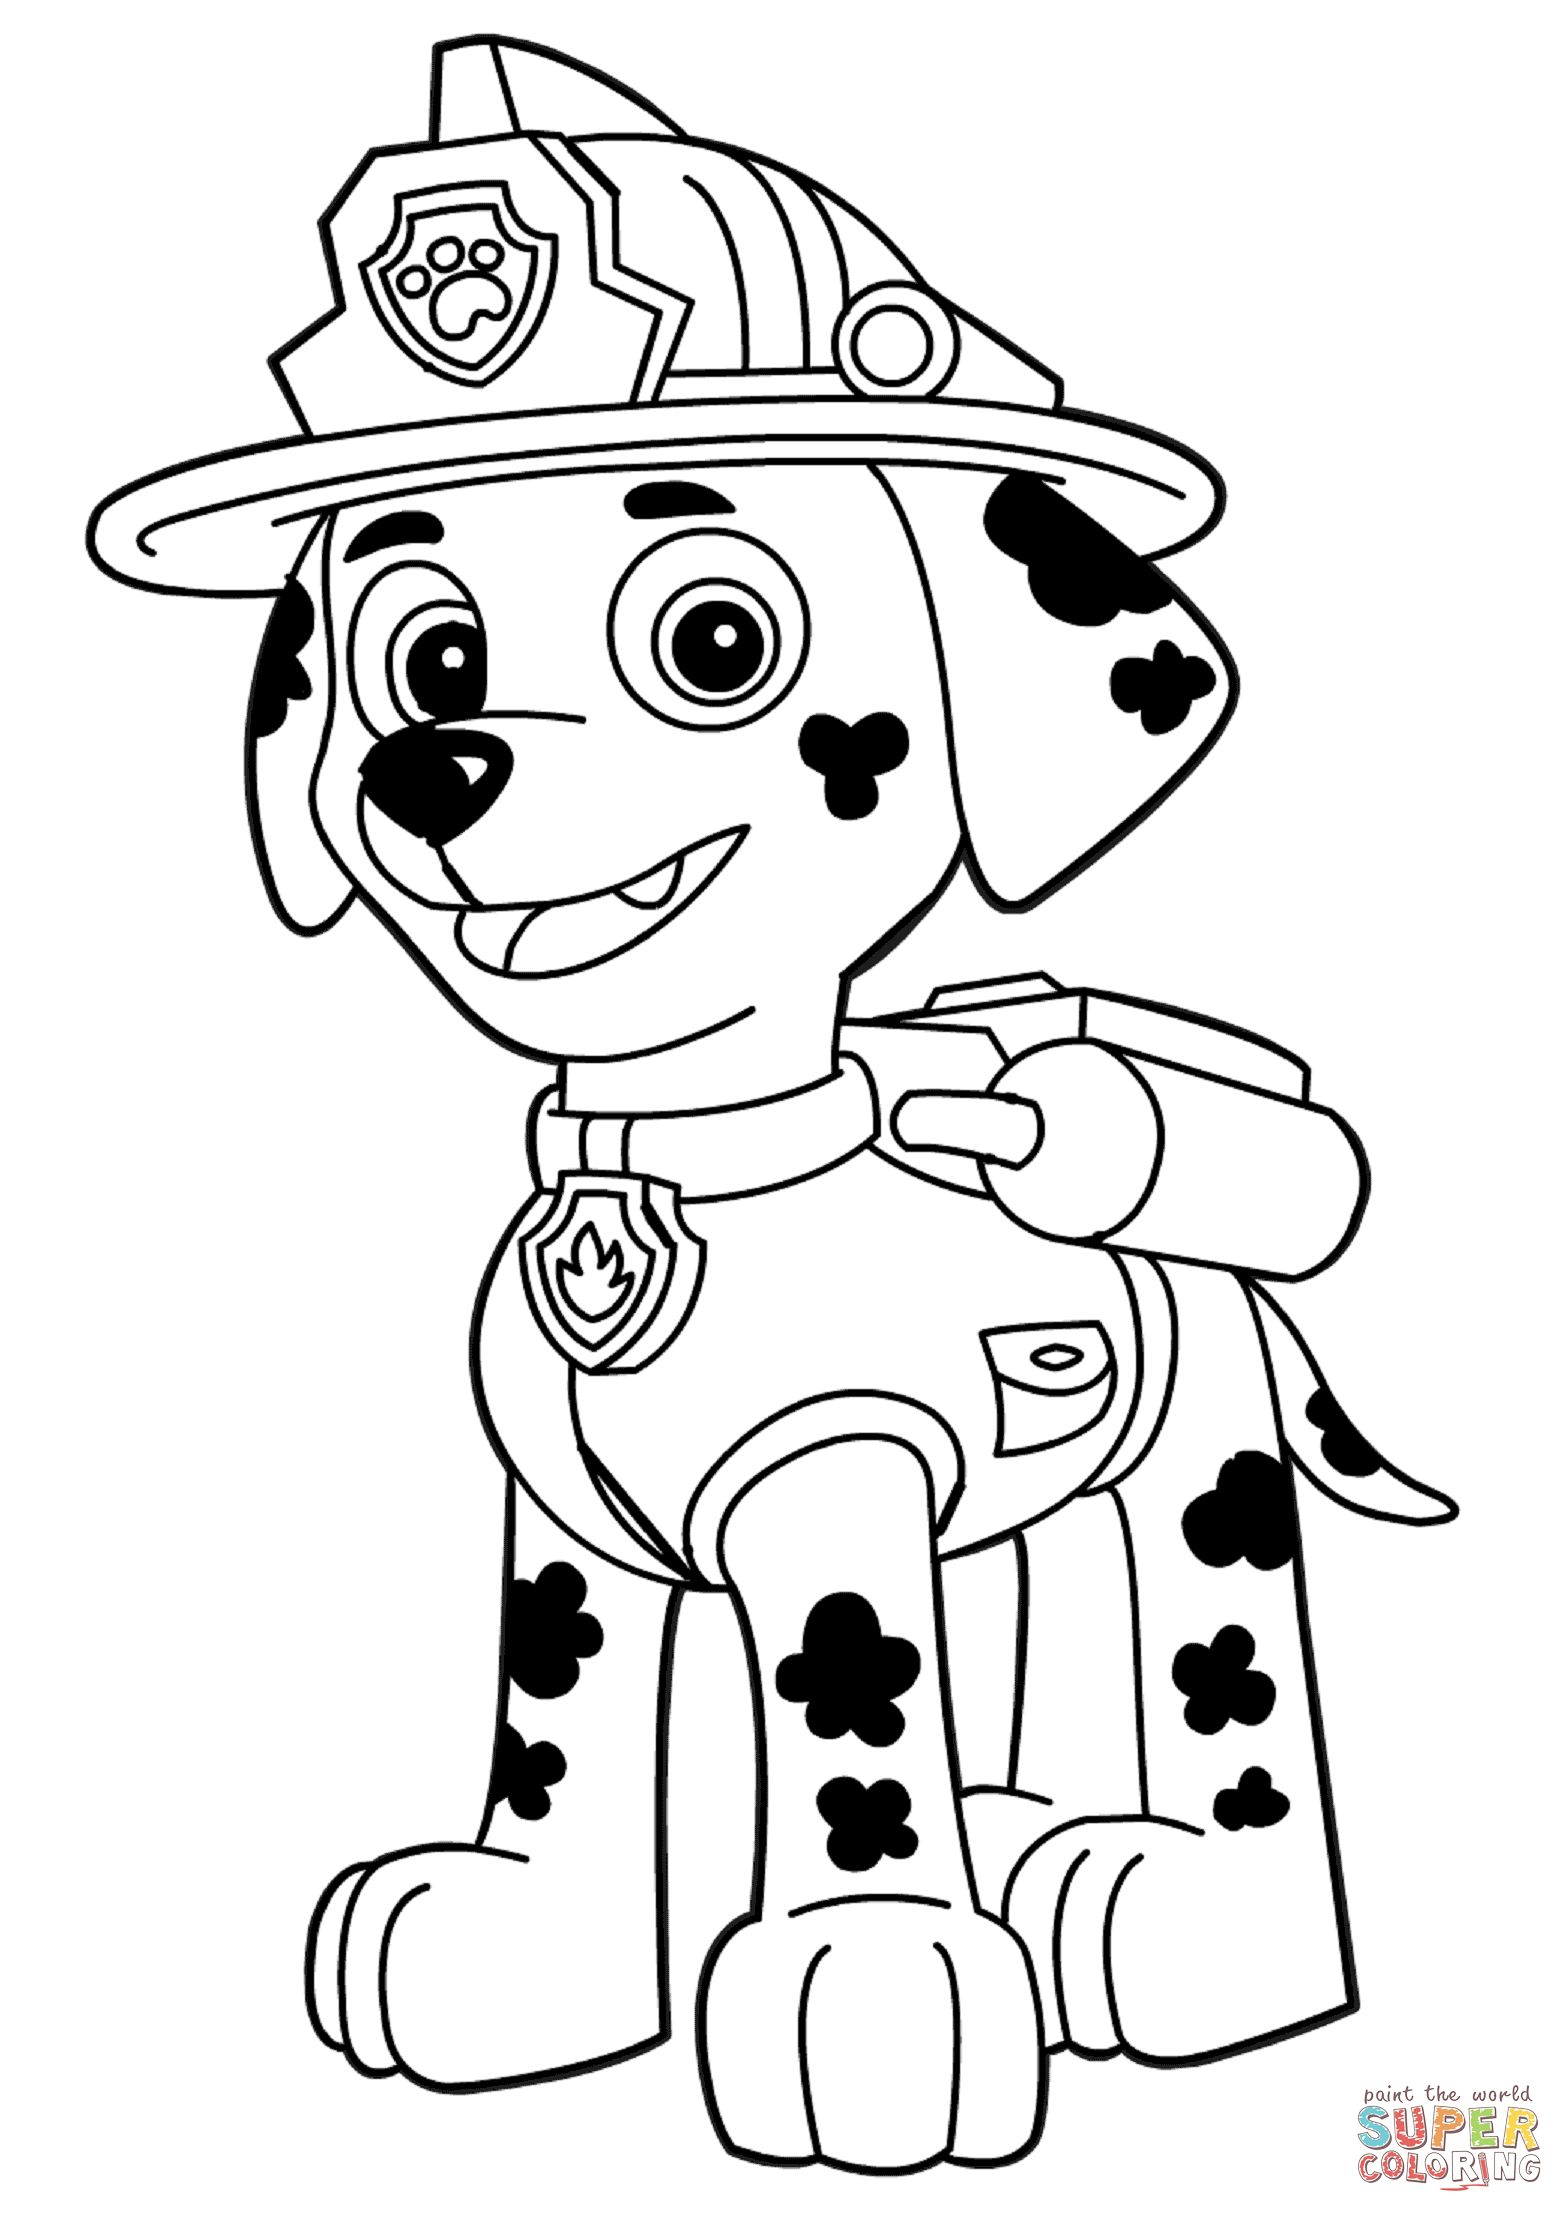 Paw patrol clipart black and white banner freeuse stock Image Result For Paw Patrol Clip Art Black And White ... banner freeuse stock